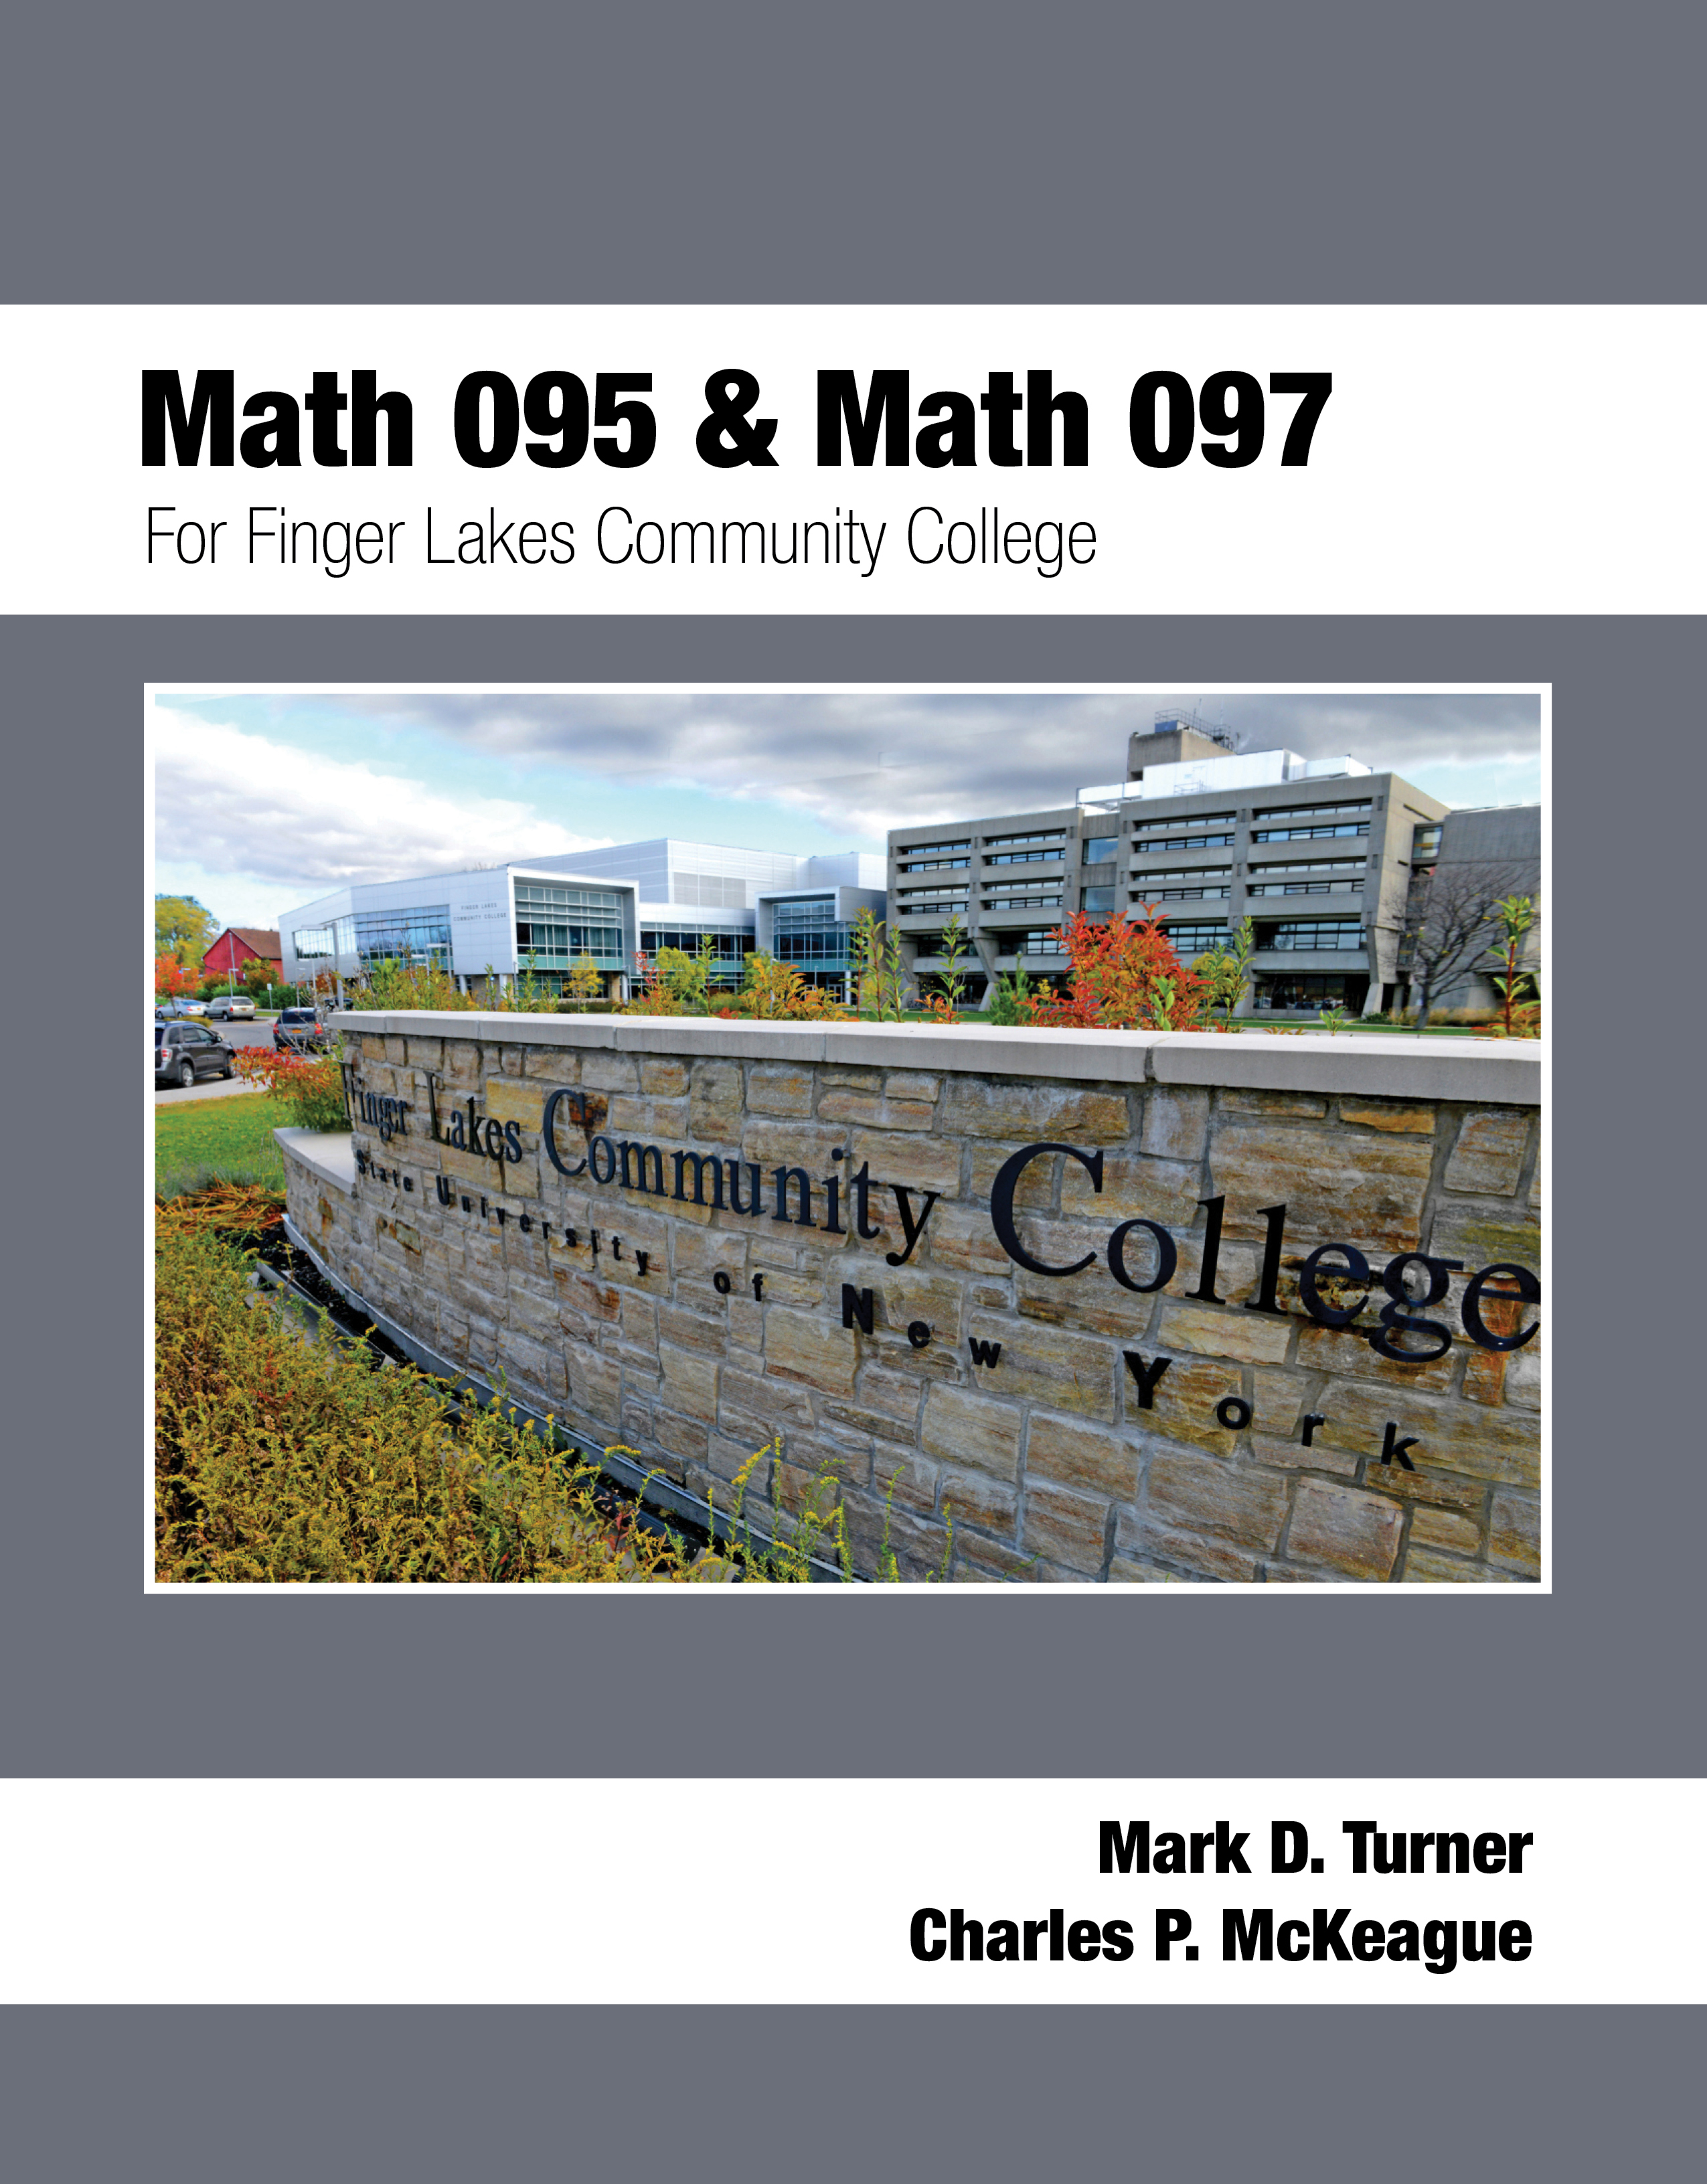 picture of Math 095 Math 097 for Finger Lakes Community College